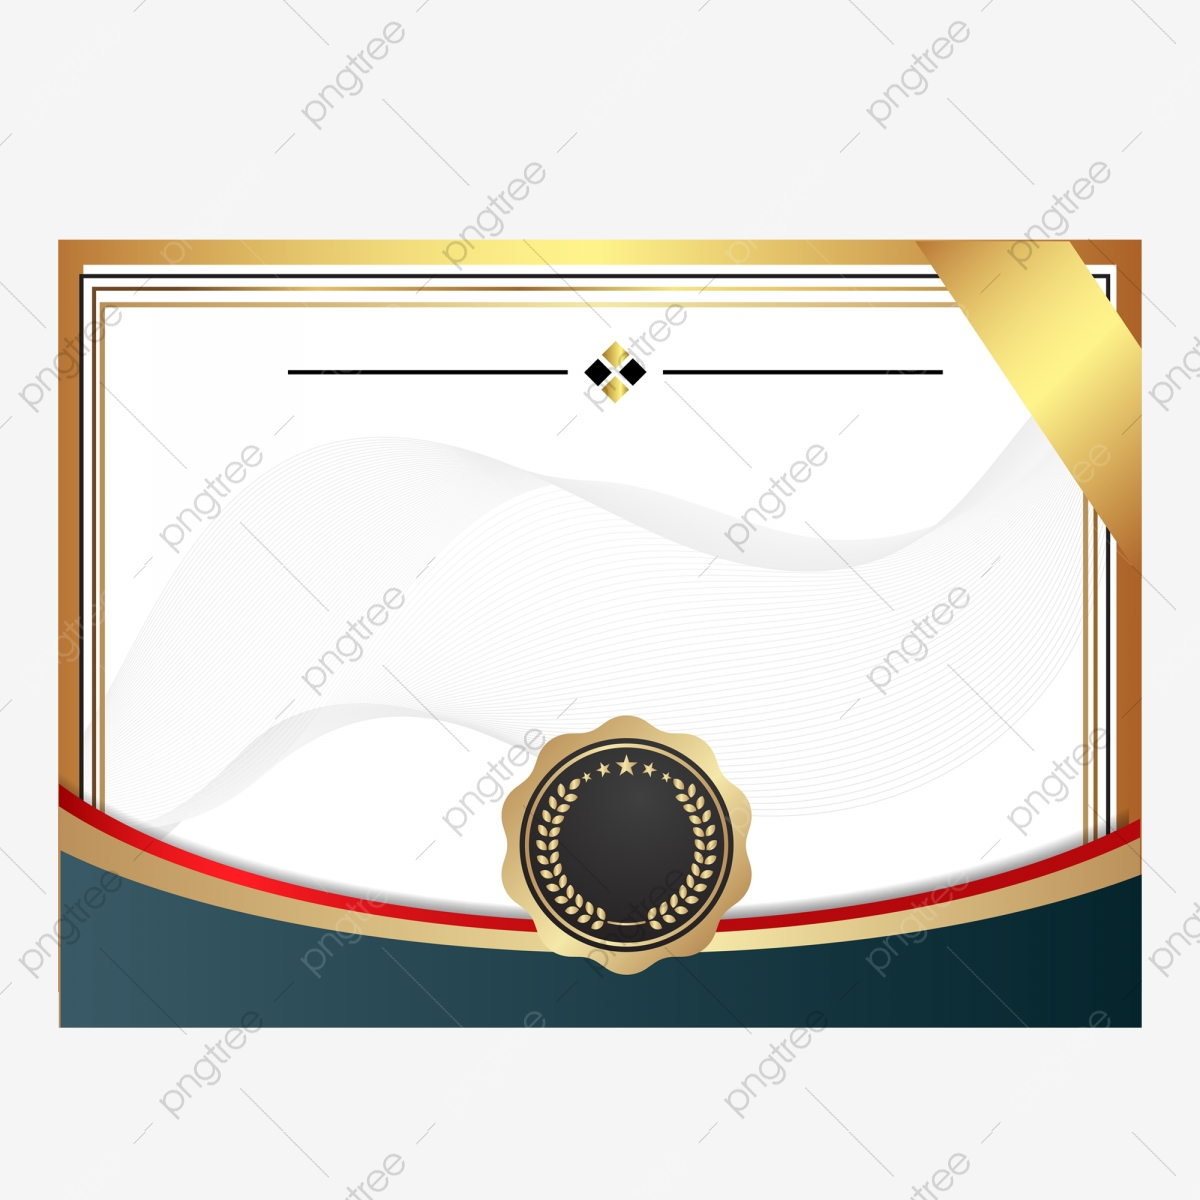 certificate border png images vector and psd files free download on pngtree https pngtree com freepng honor certificate border 5396712 html